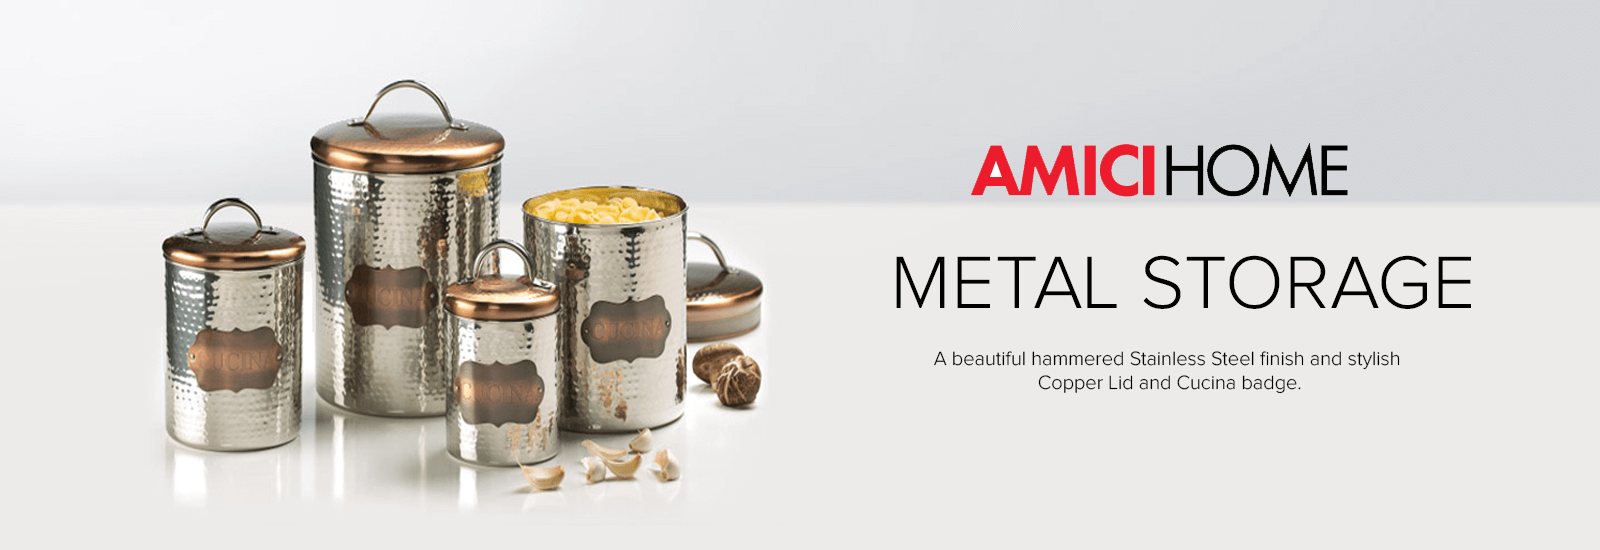 Amici Home Metal Storage